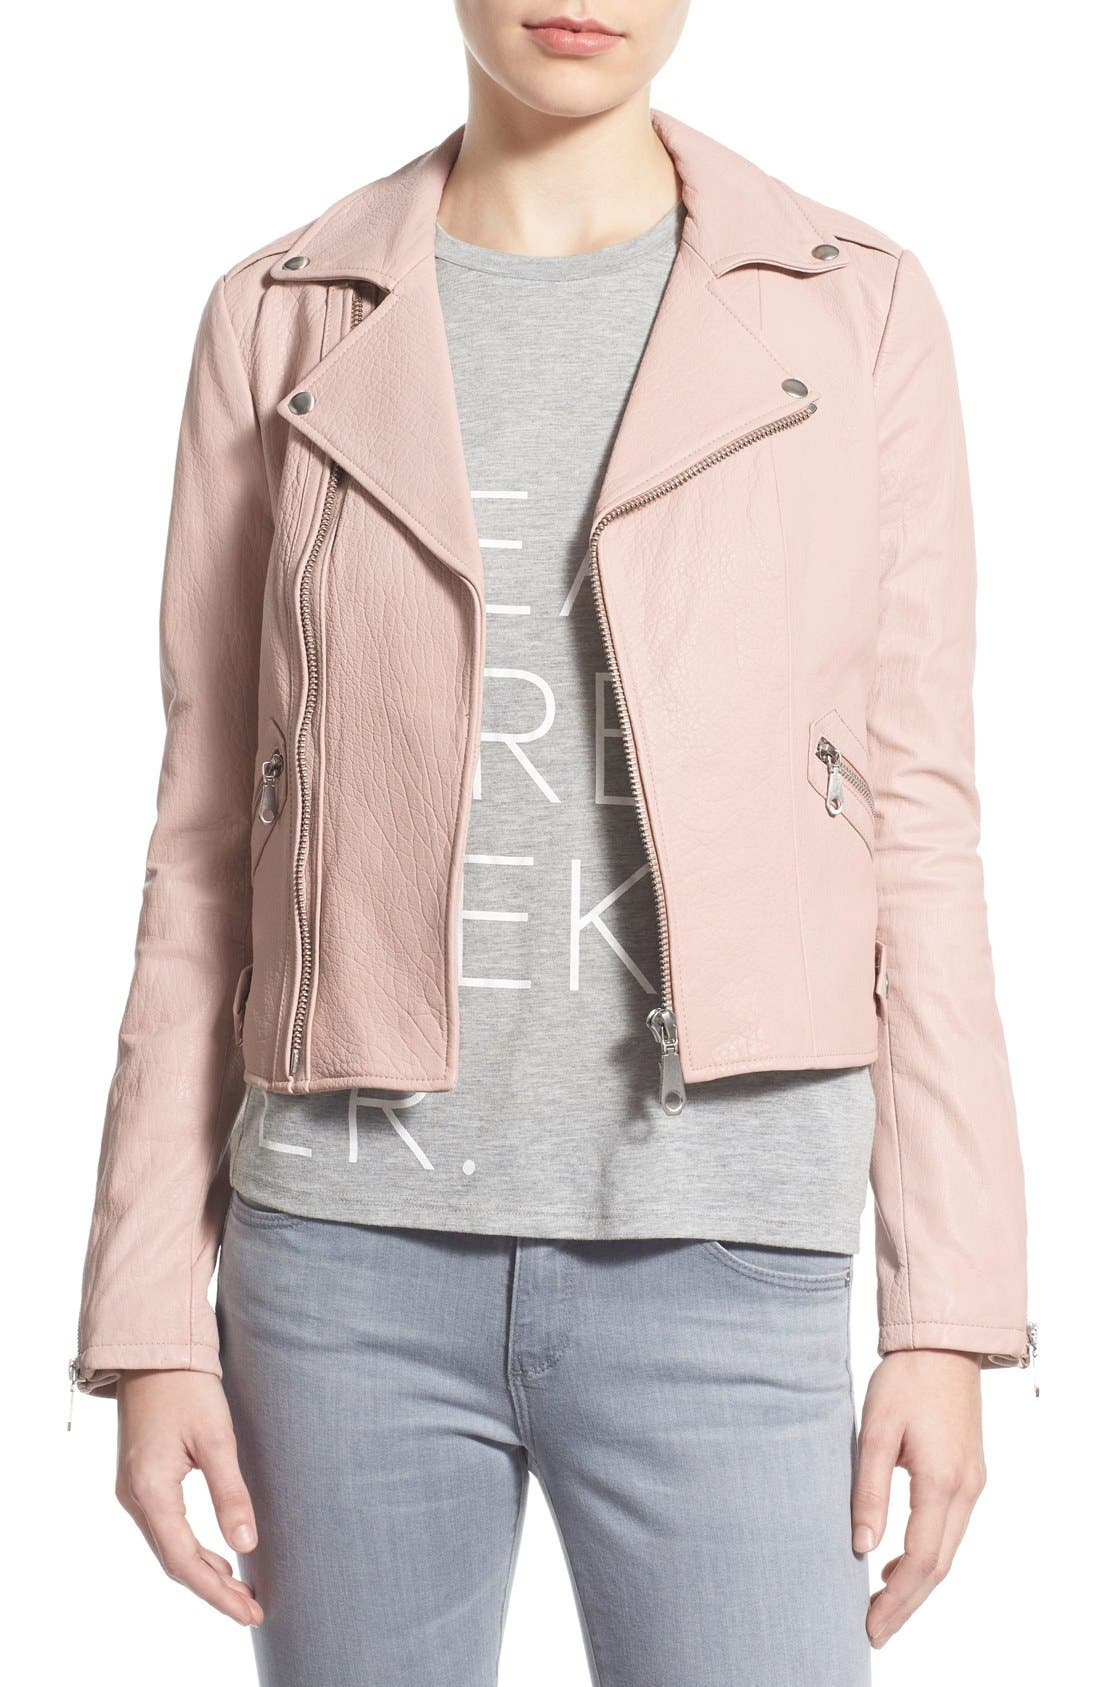 Pebble Leather Jacket,                         Main,                         color, 650